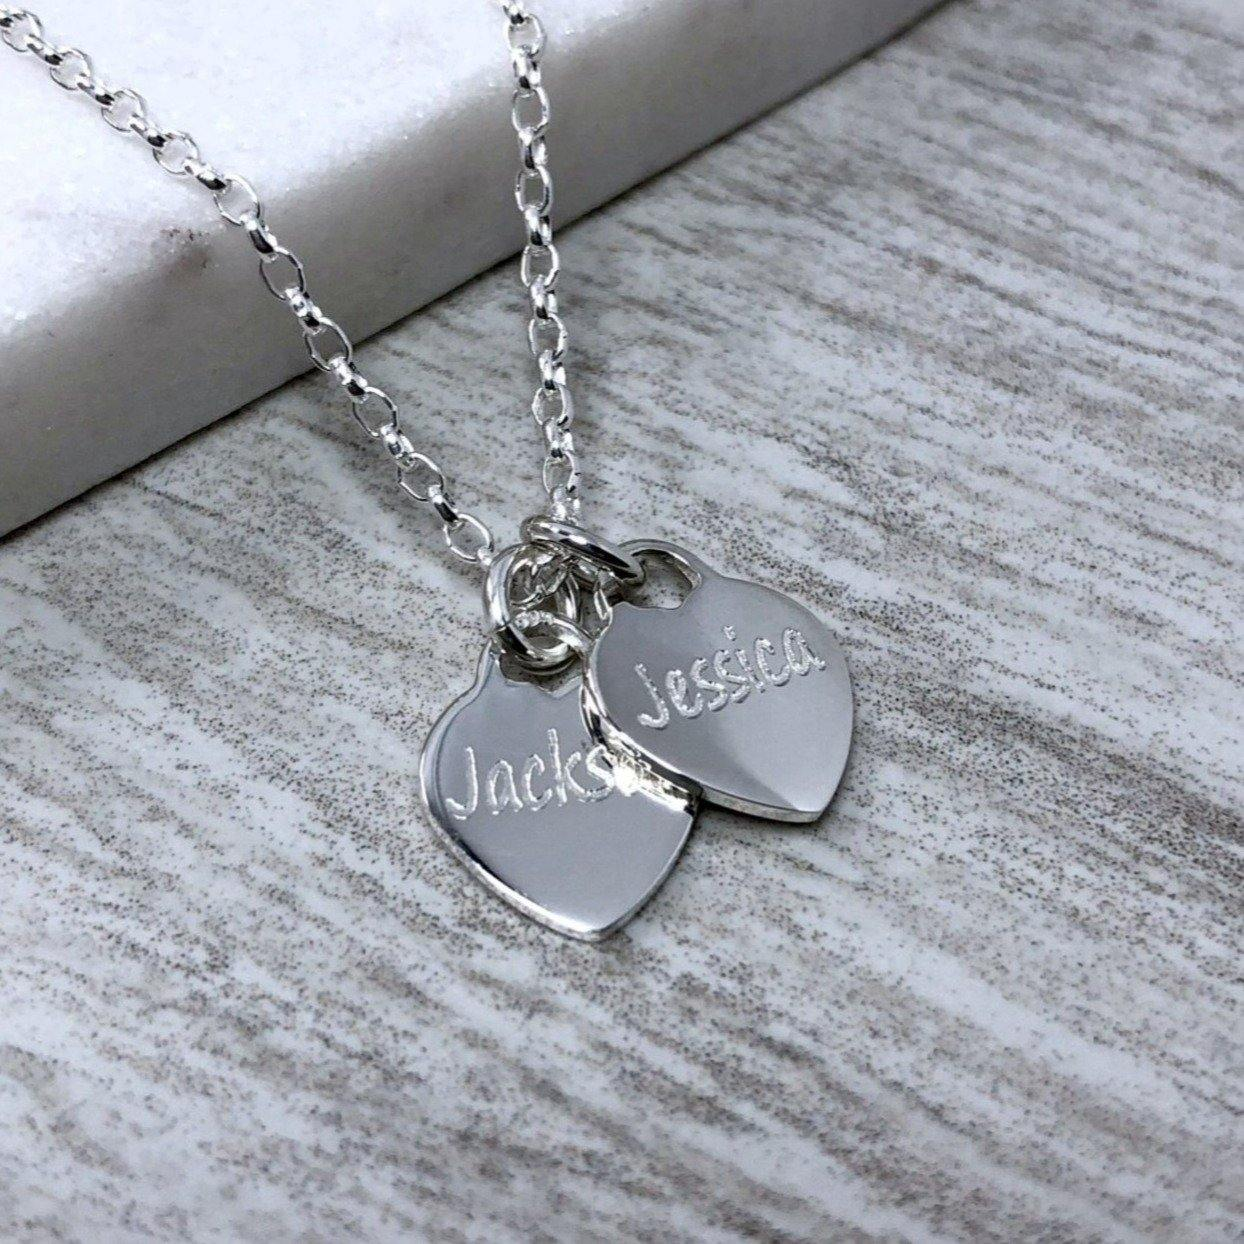 engraved sterling silver heart necklace, small and dainty, personalised with any name up to 7 letters